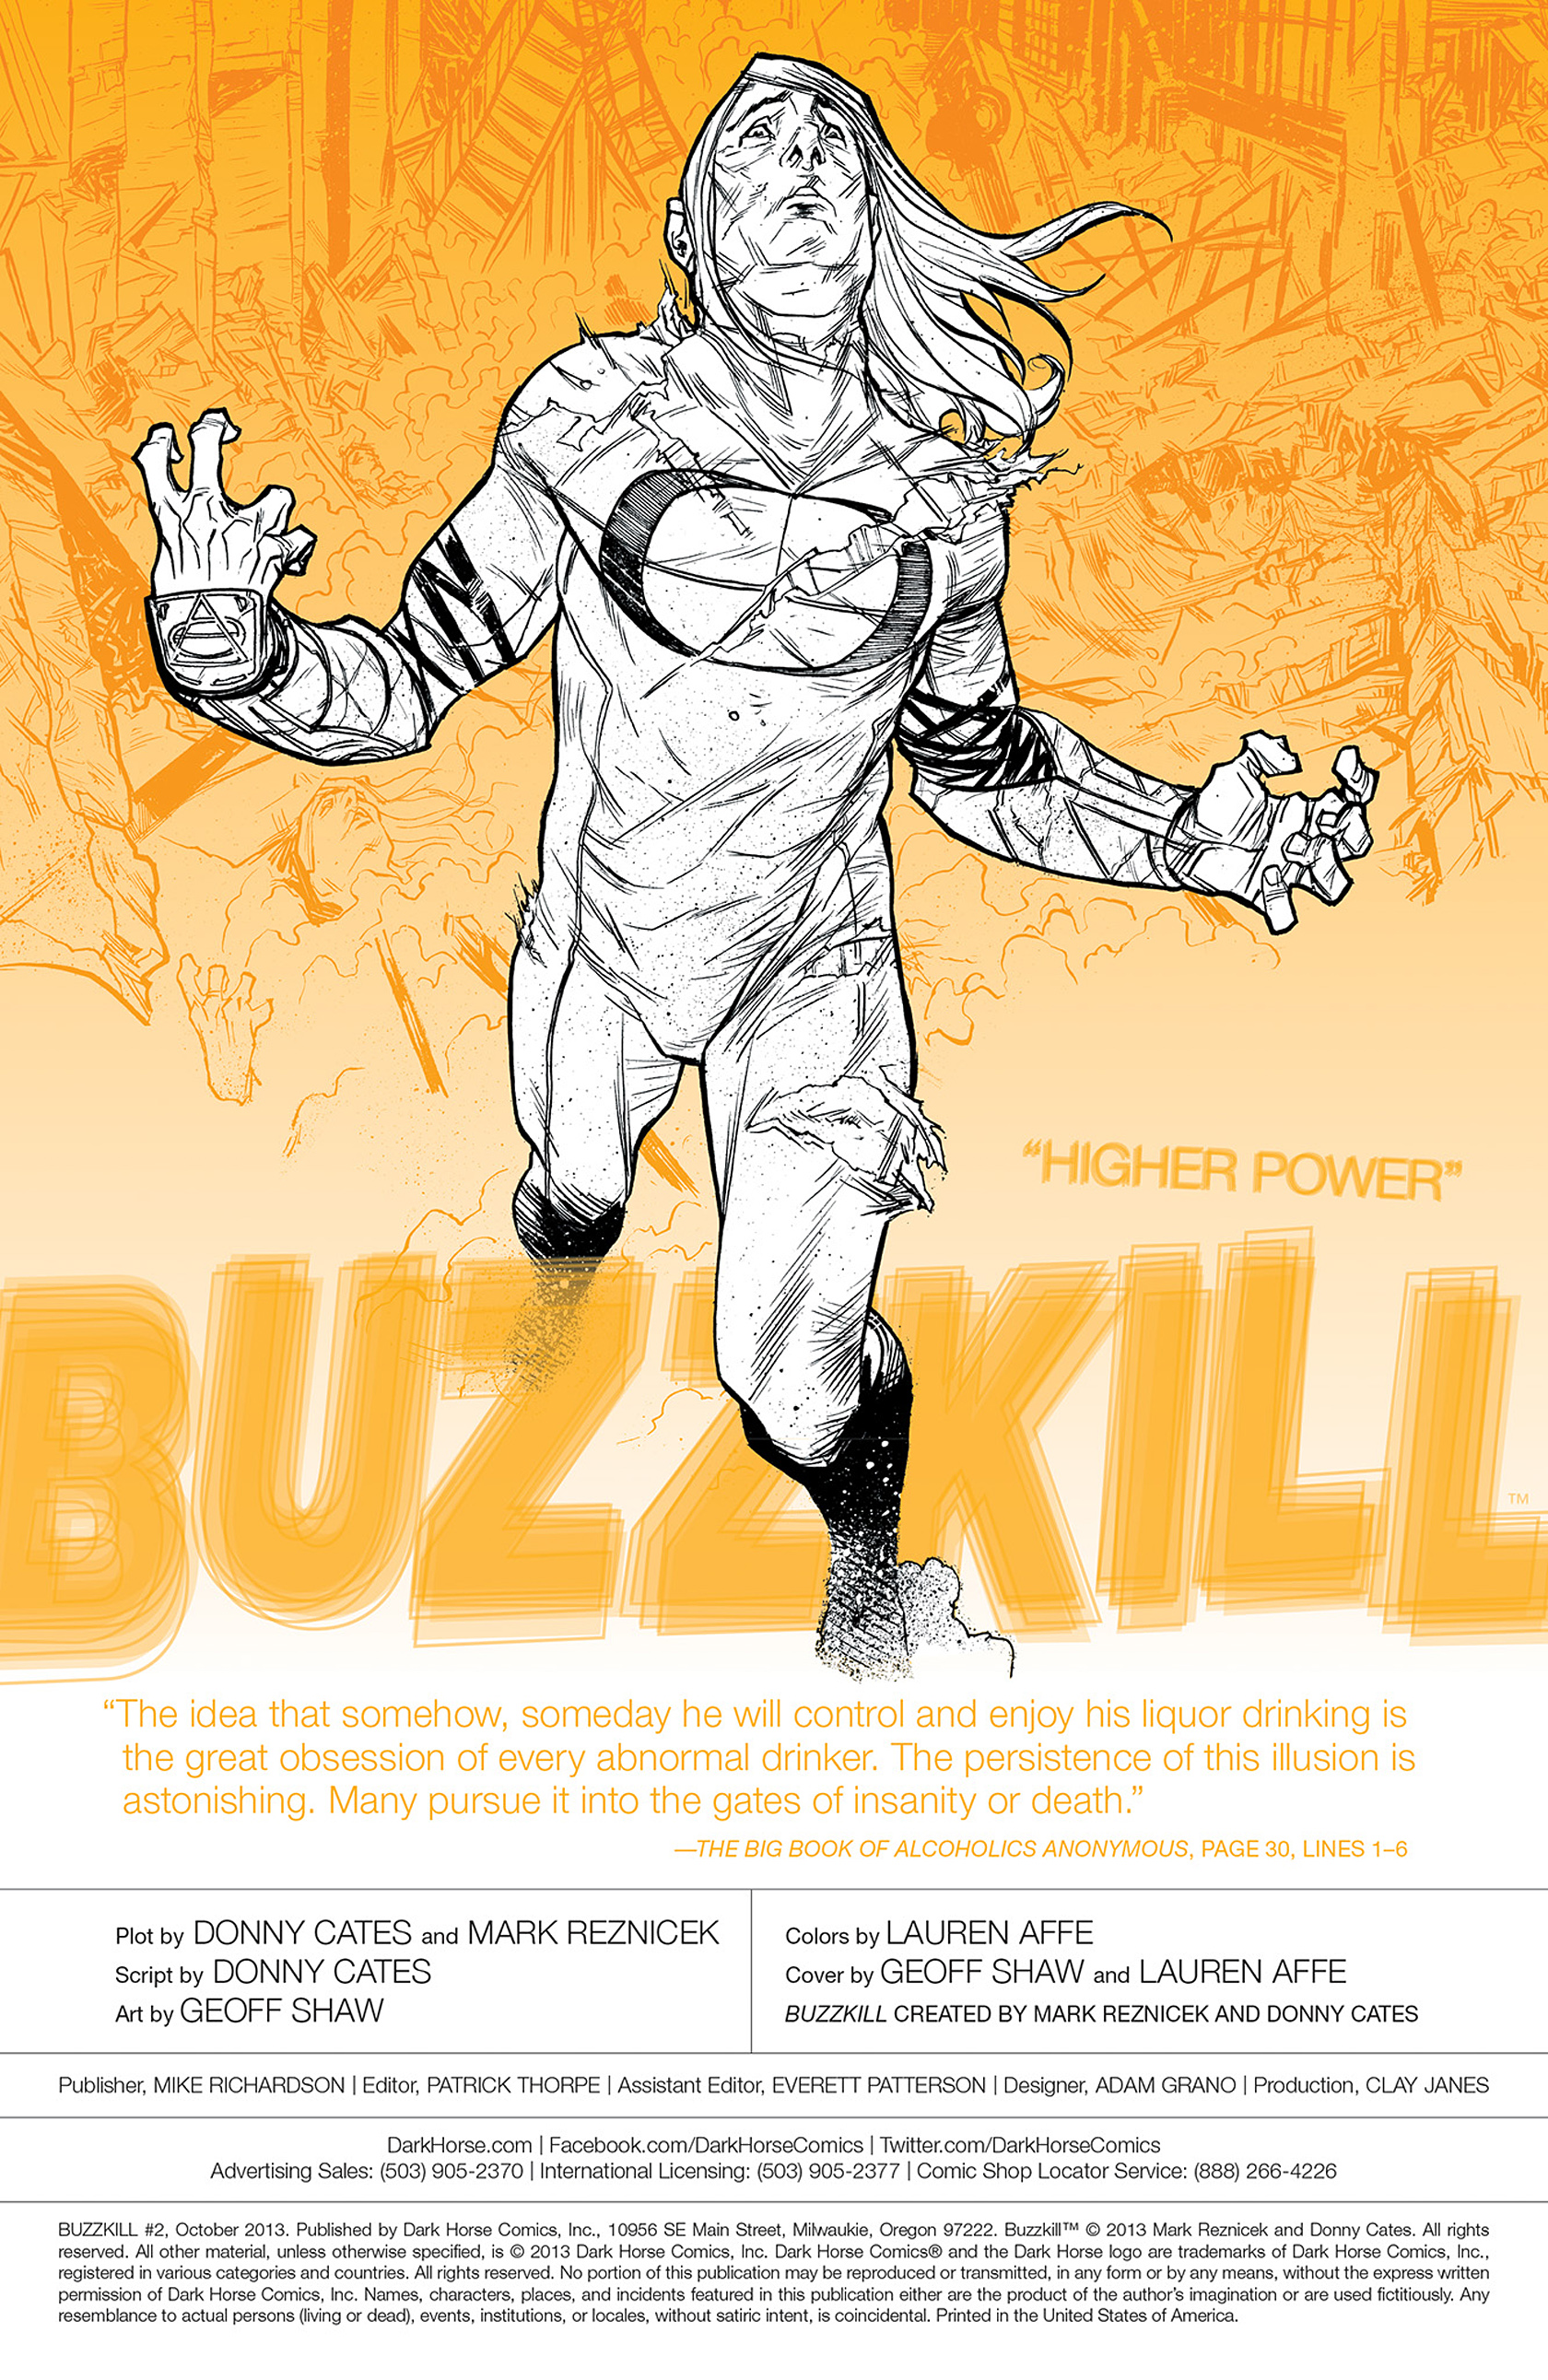 Read online Buzzkill comic -  Issue #2 - 2